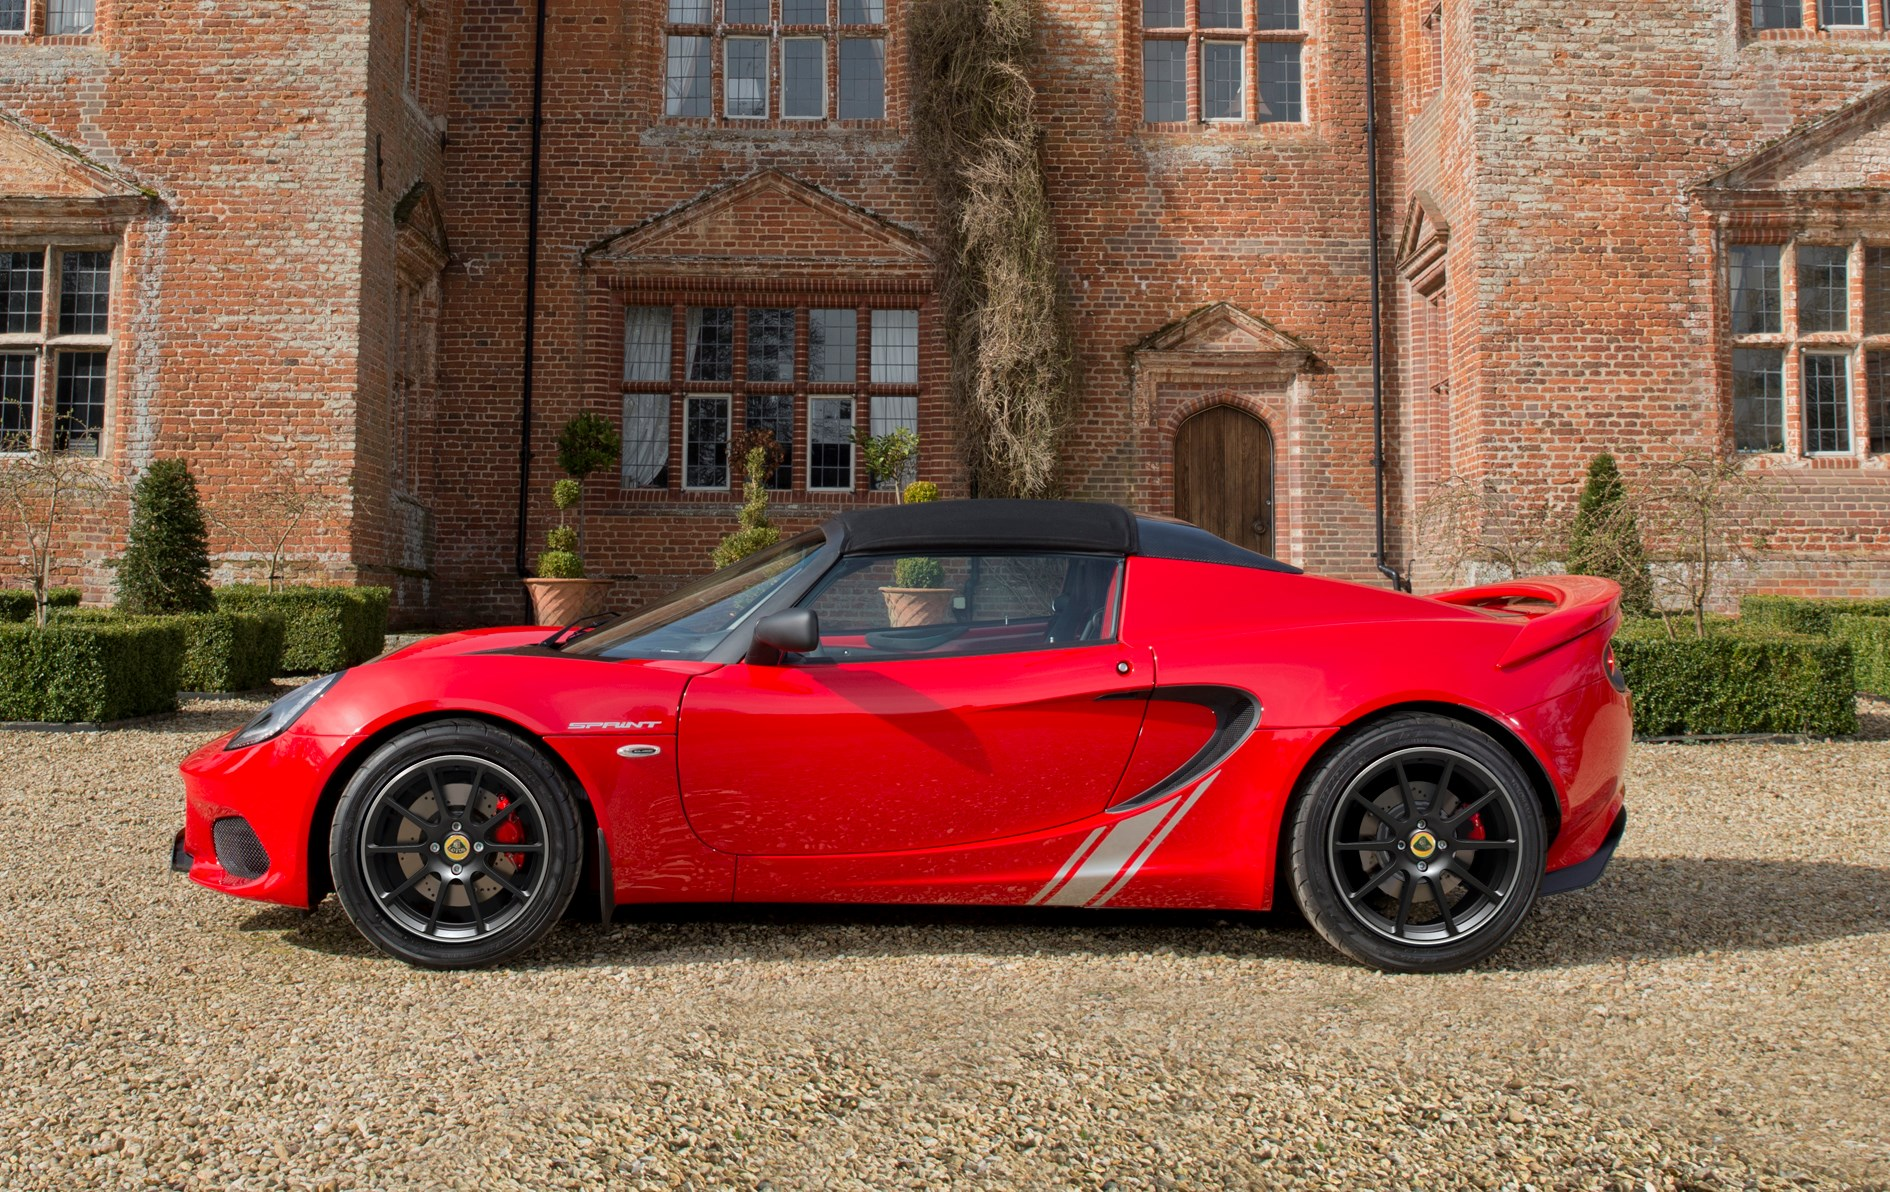 2018 lotus elise price.  2018 lotus elise sprint on sale now from 37300 throughout 2018 lotus elise price x